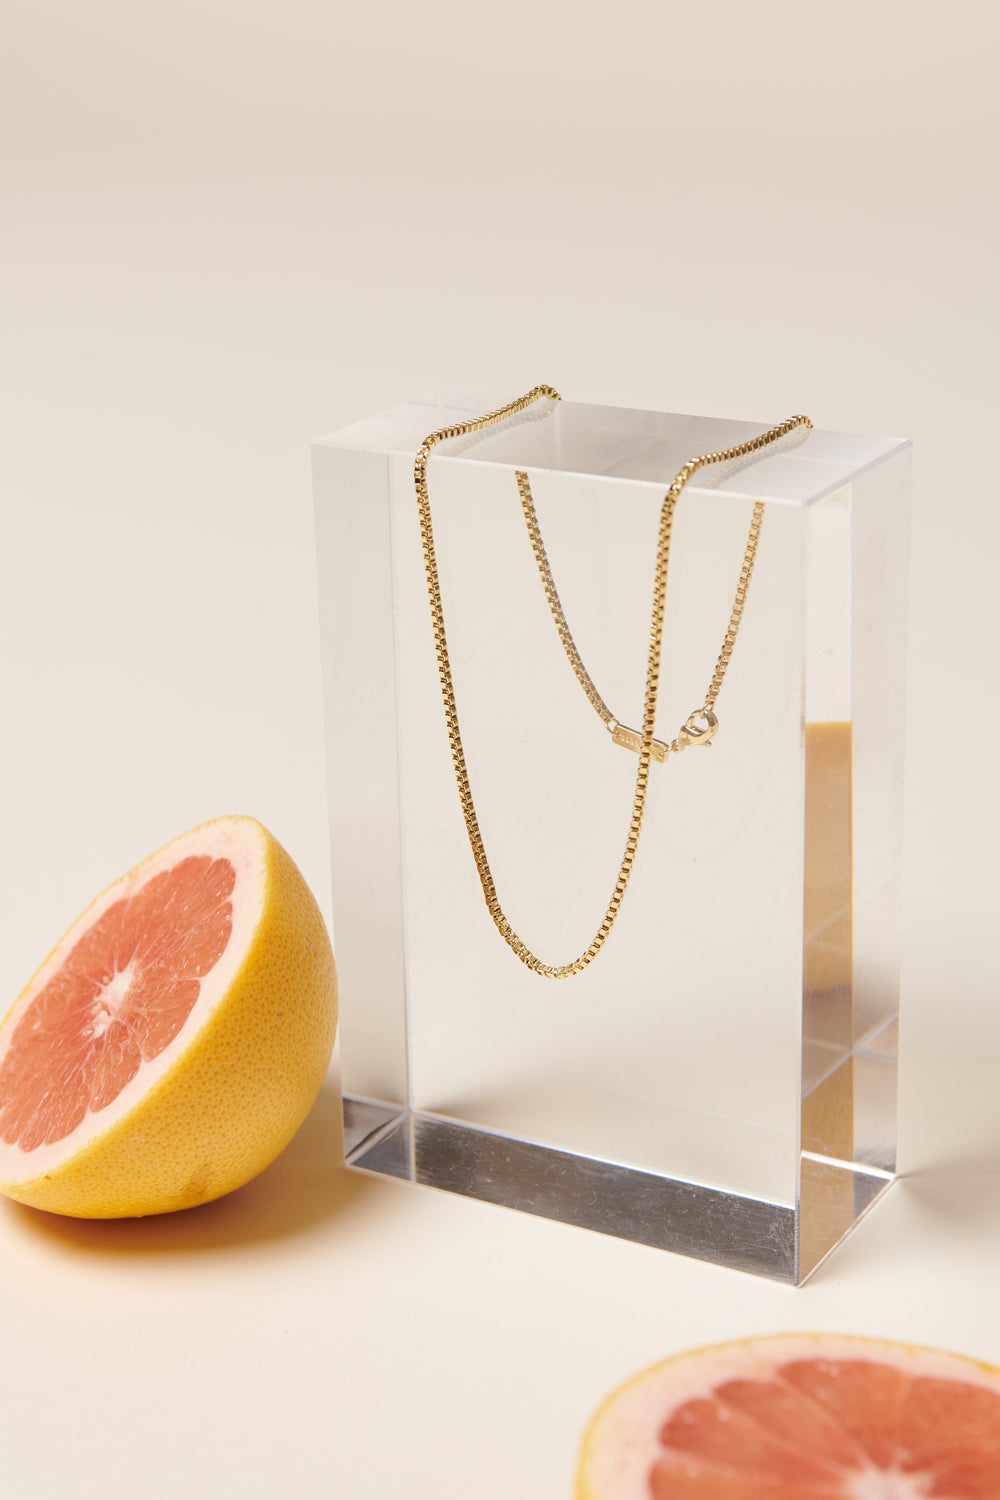 Machete Petite Box Chain Necklace in Gold - Whimsy & Row